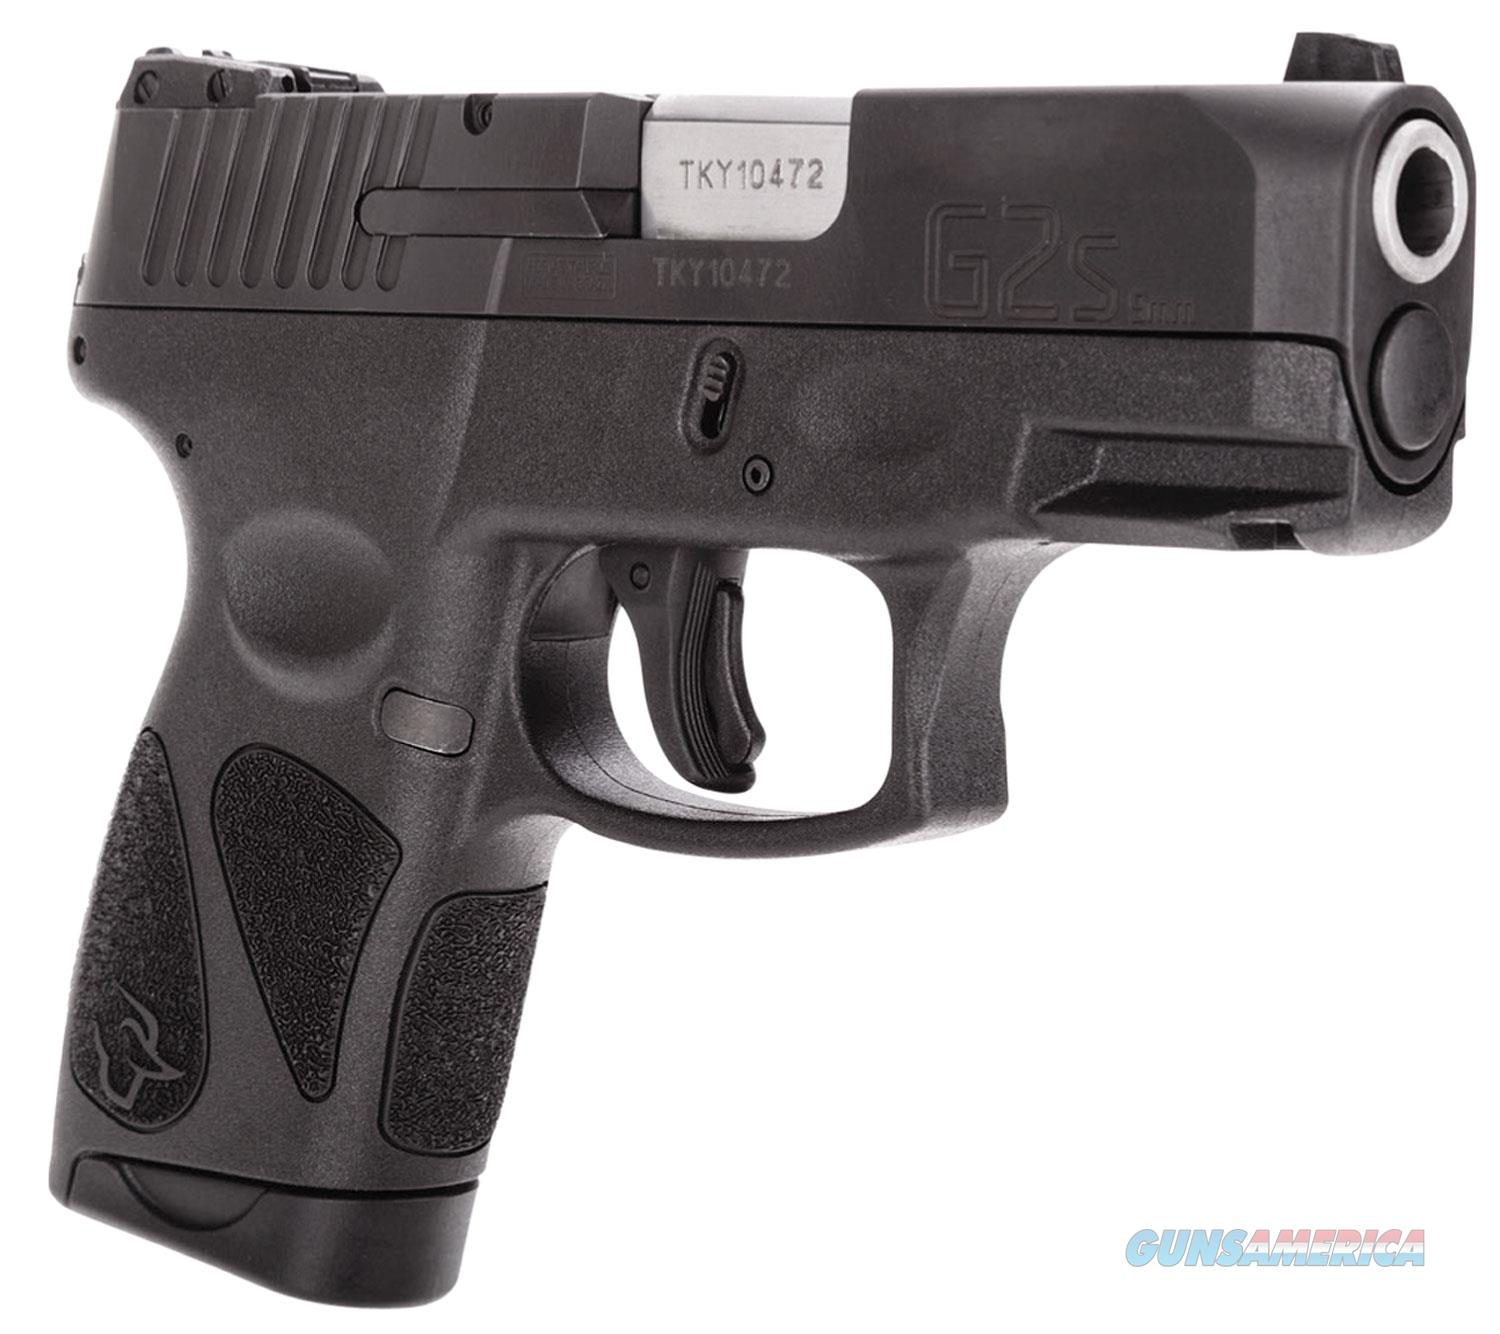 Taurus G2S 9MM Pistol (Replaced the SLIM)  Guns > Pistols > Taurus Pistols > Semi Auto Pistols > Polymer Frame